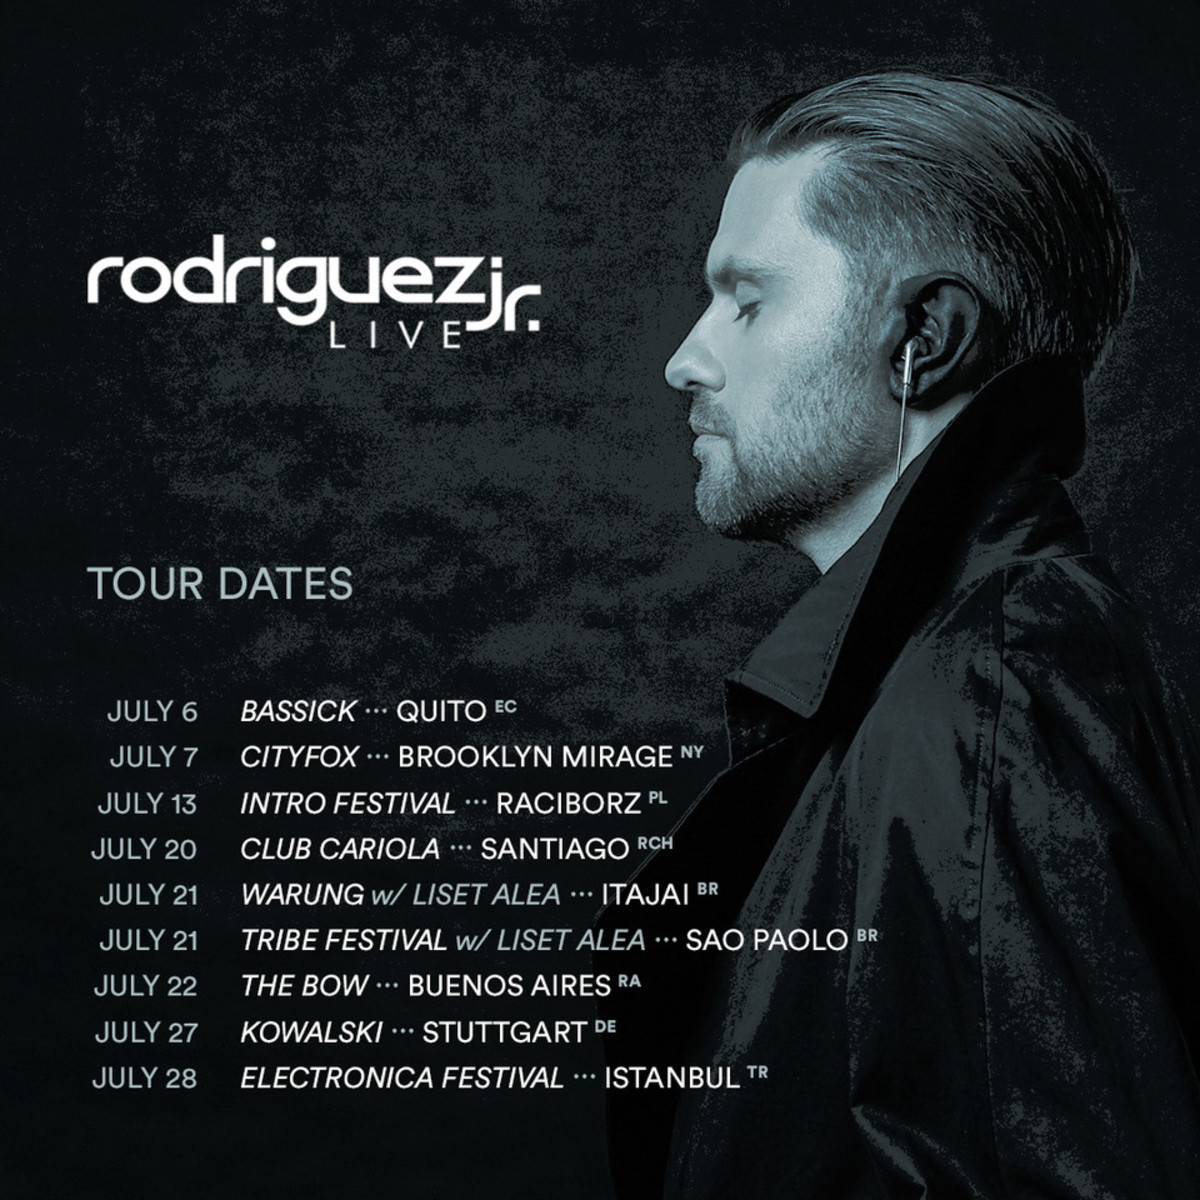 RodriguezJr_tourdates_july18_instagram